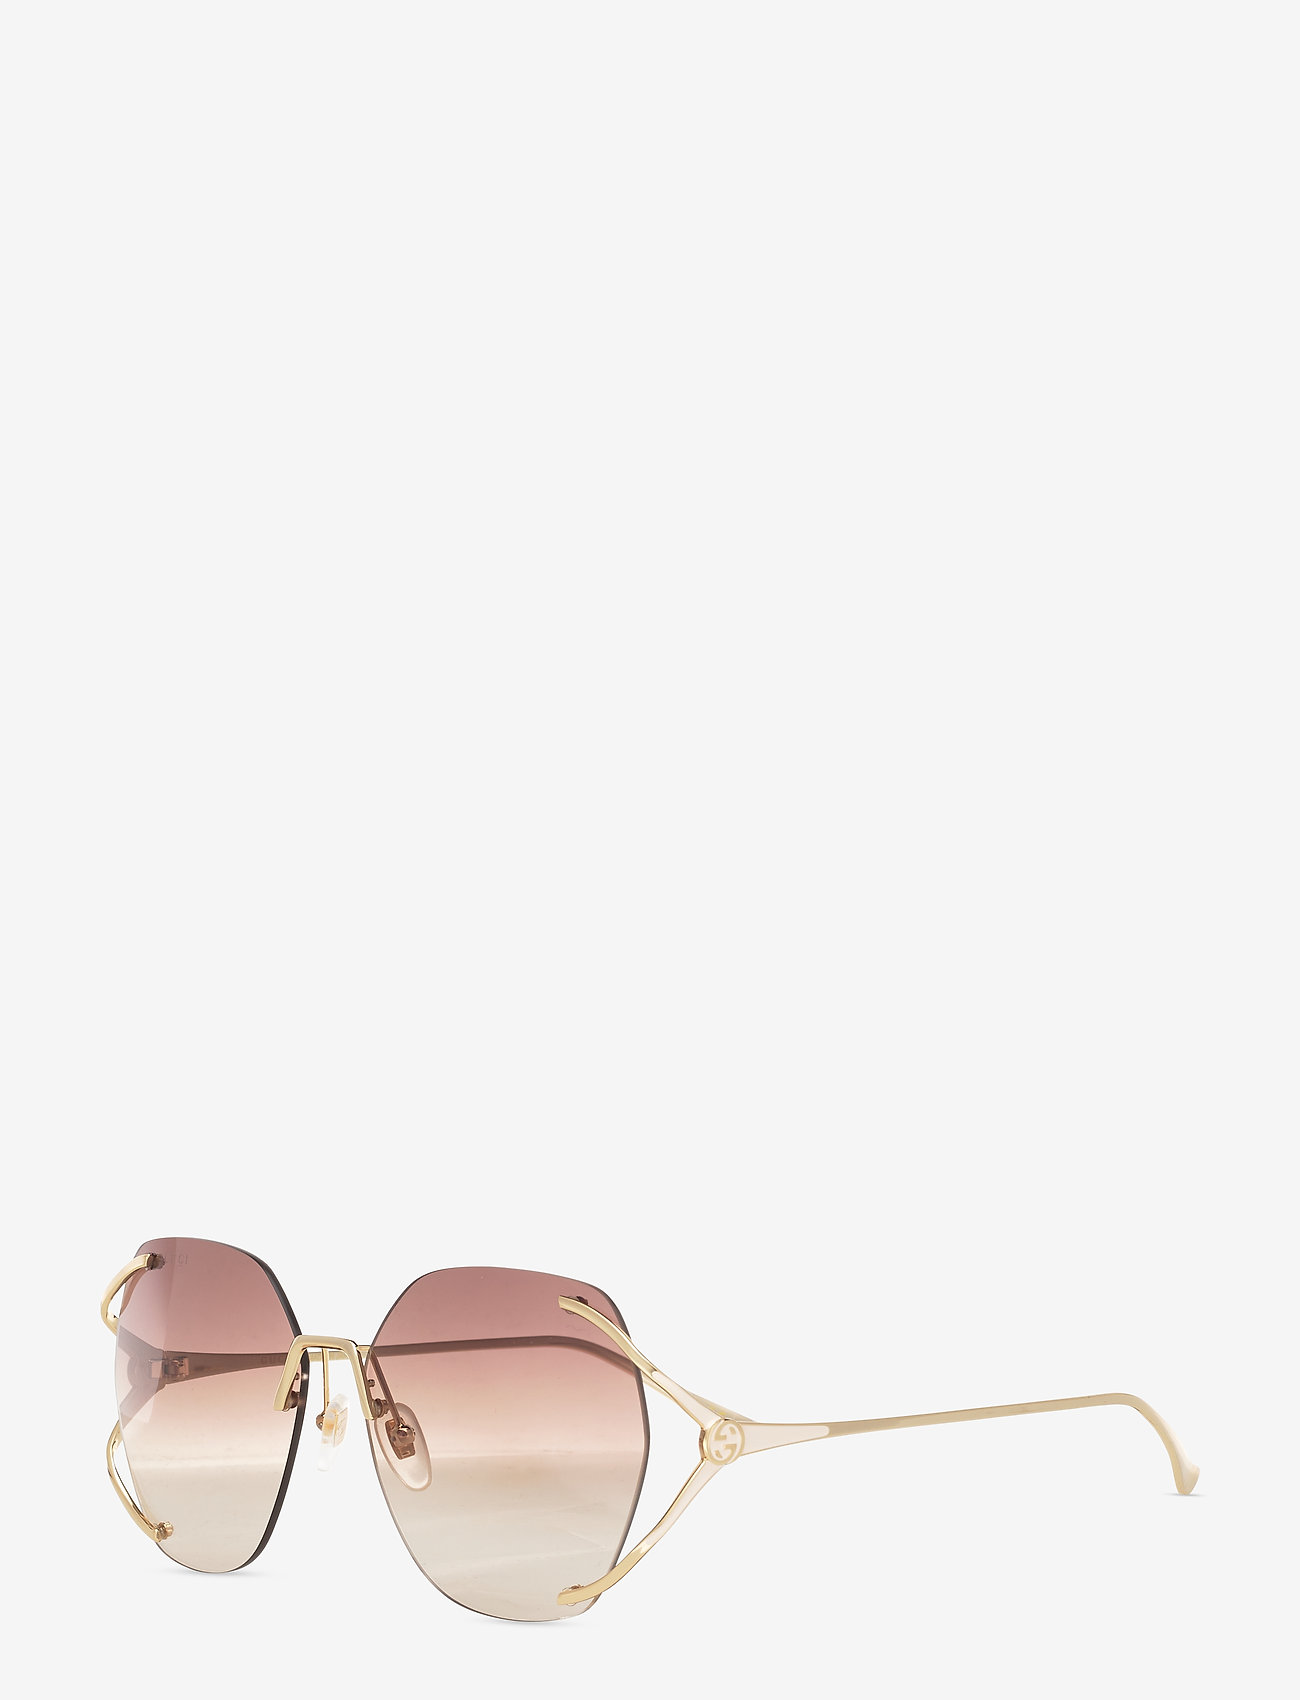 Gucci Sunglasses - GG0651S - rond model - gold-gold-brown - 1